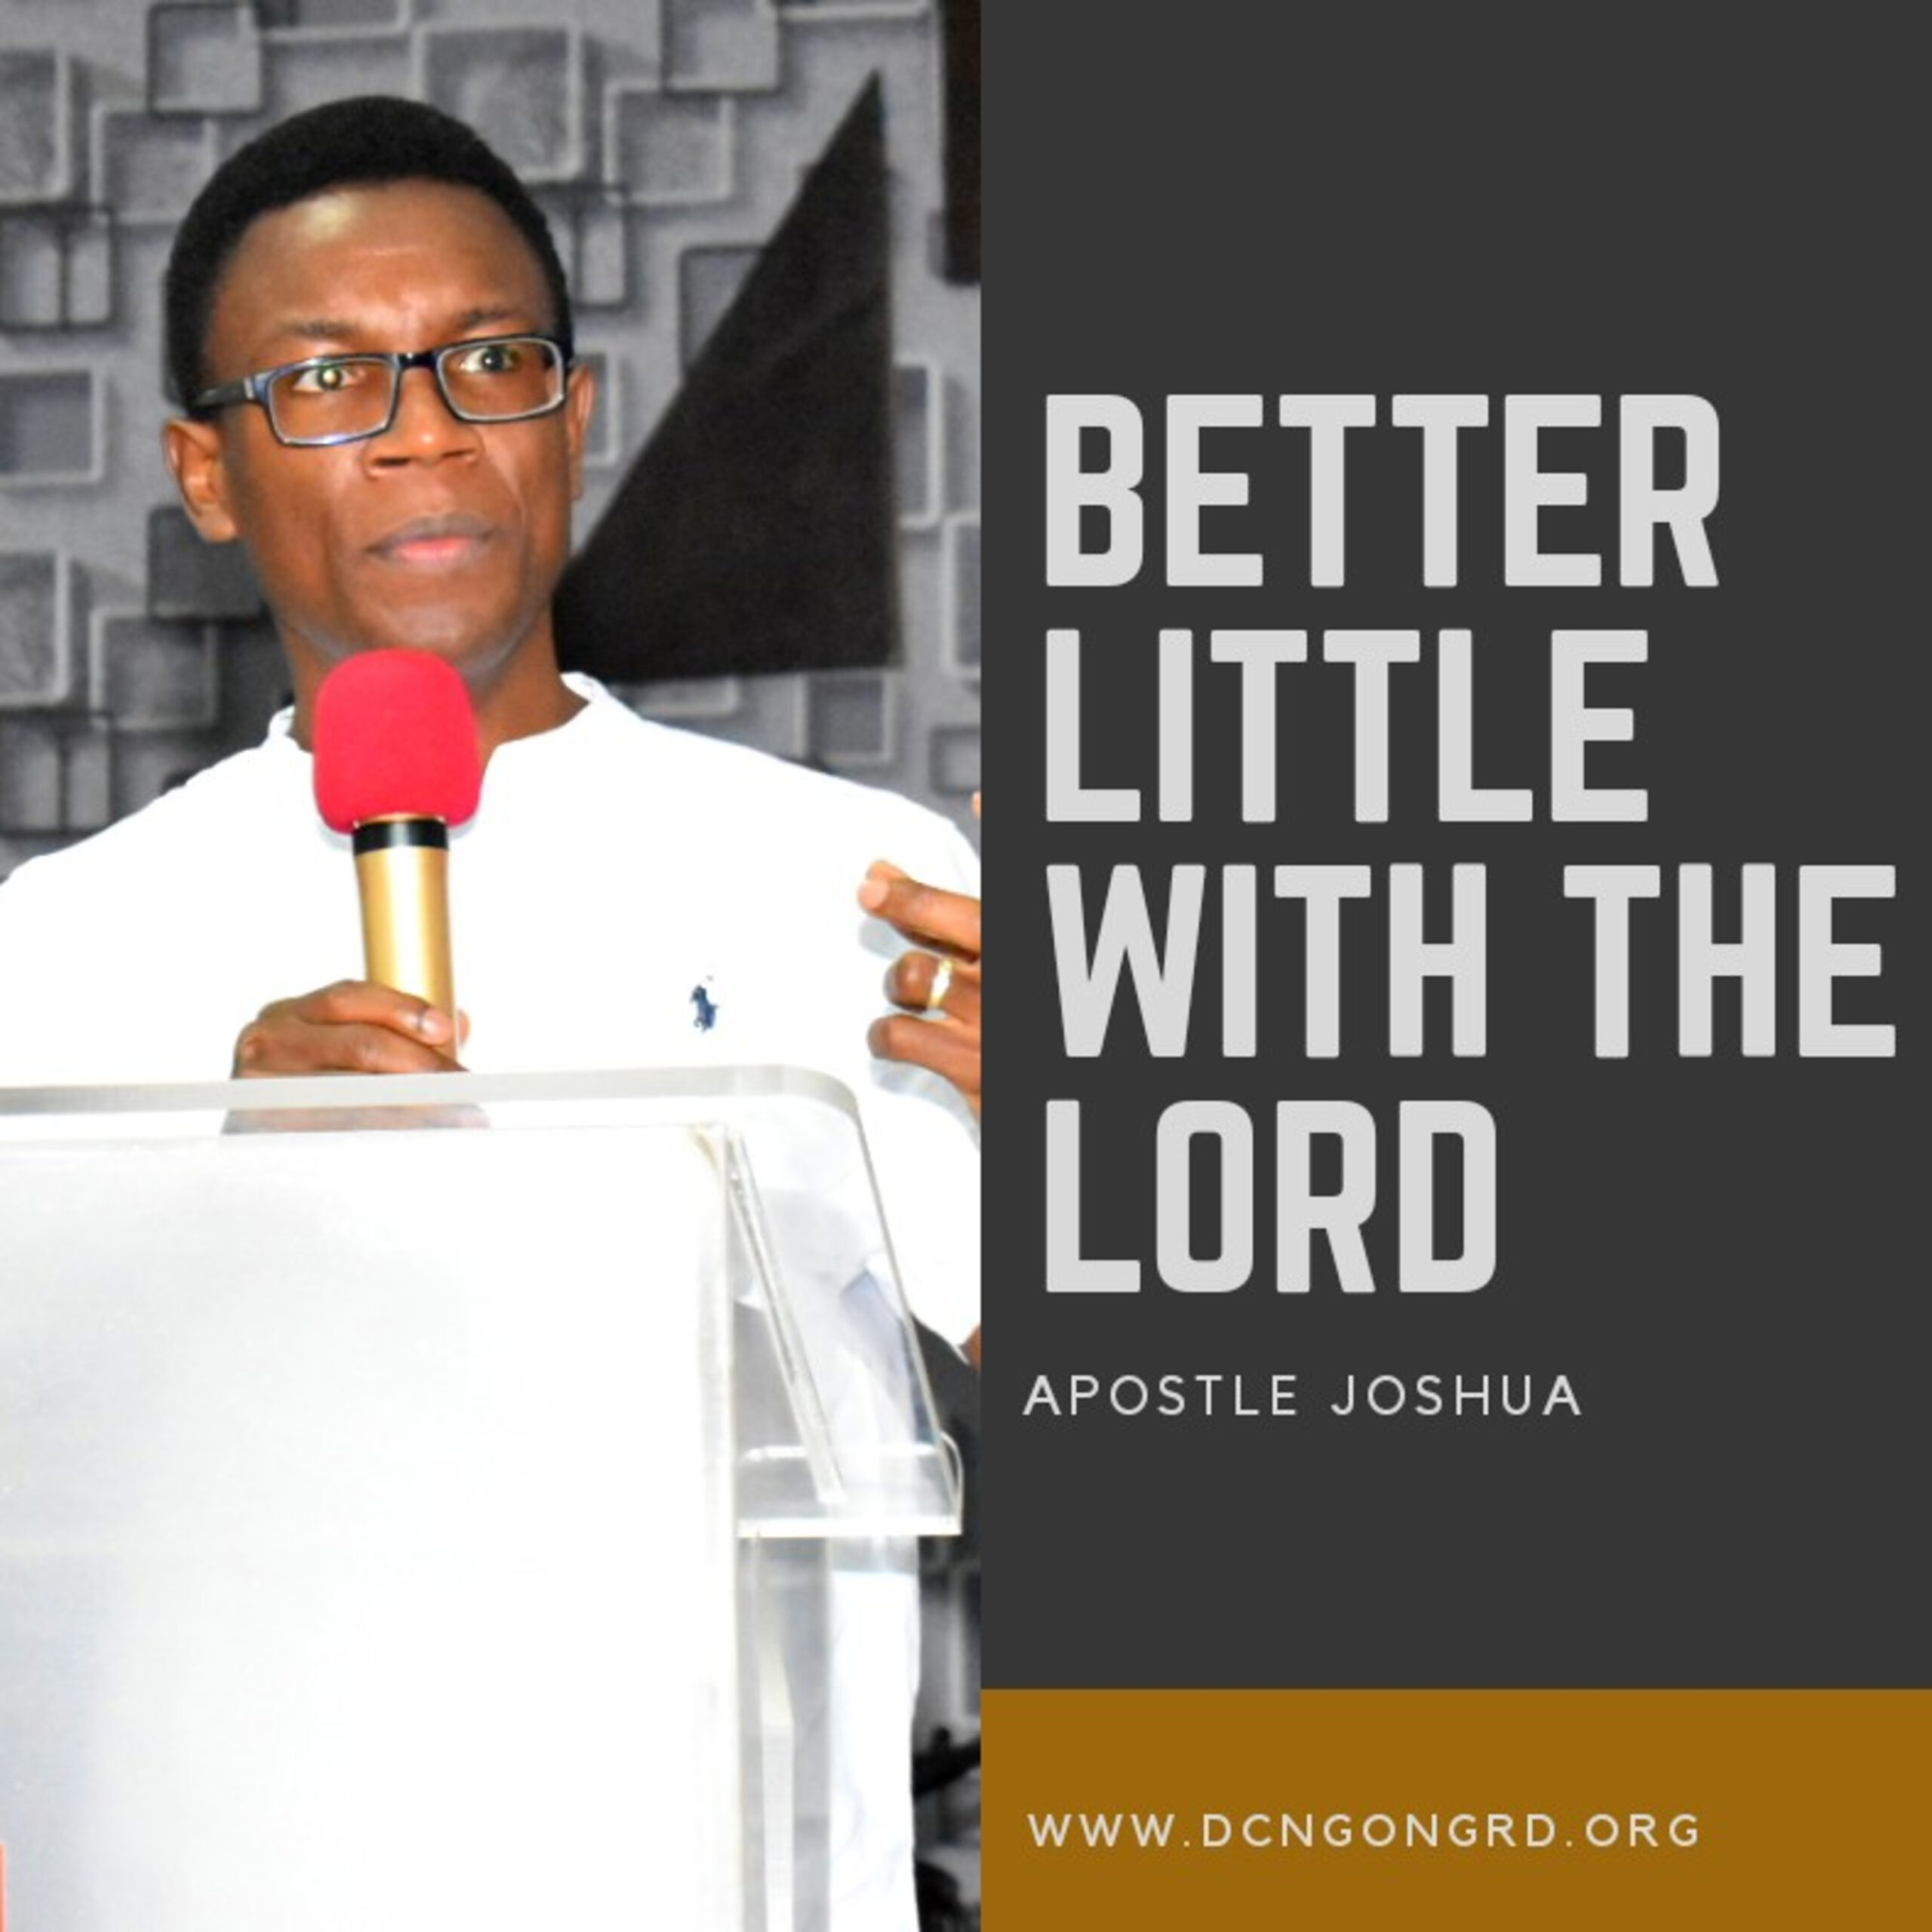 Better Little with the Lord